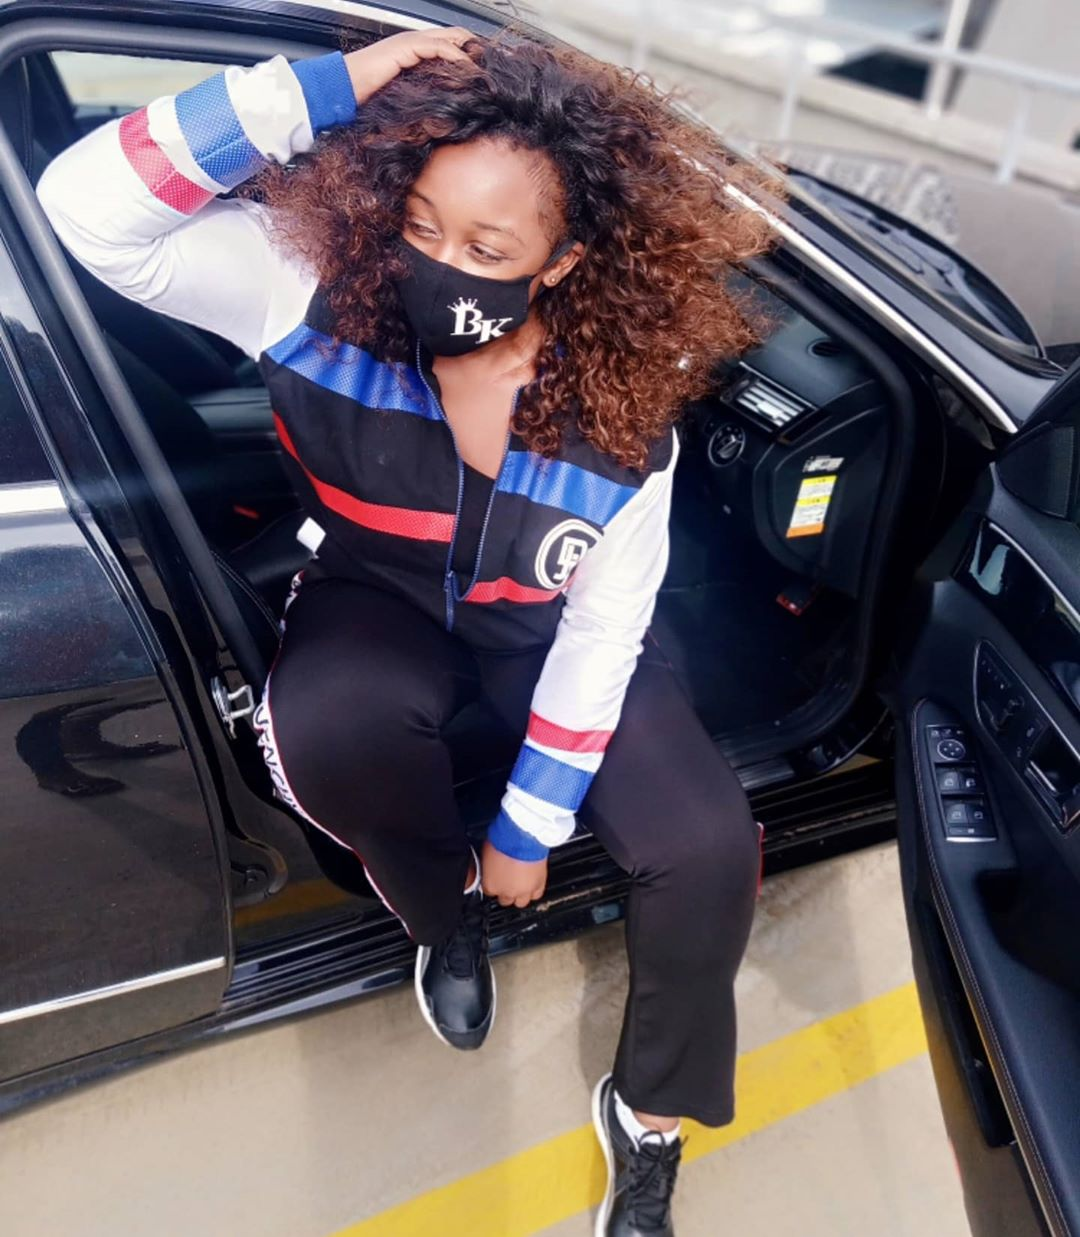 Betty Kyallo talks about her new property investment after hurtful comments about small salon